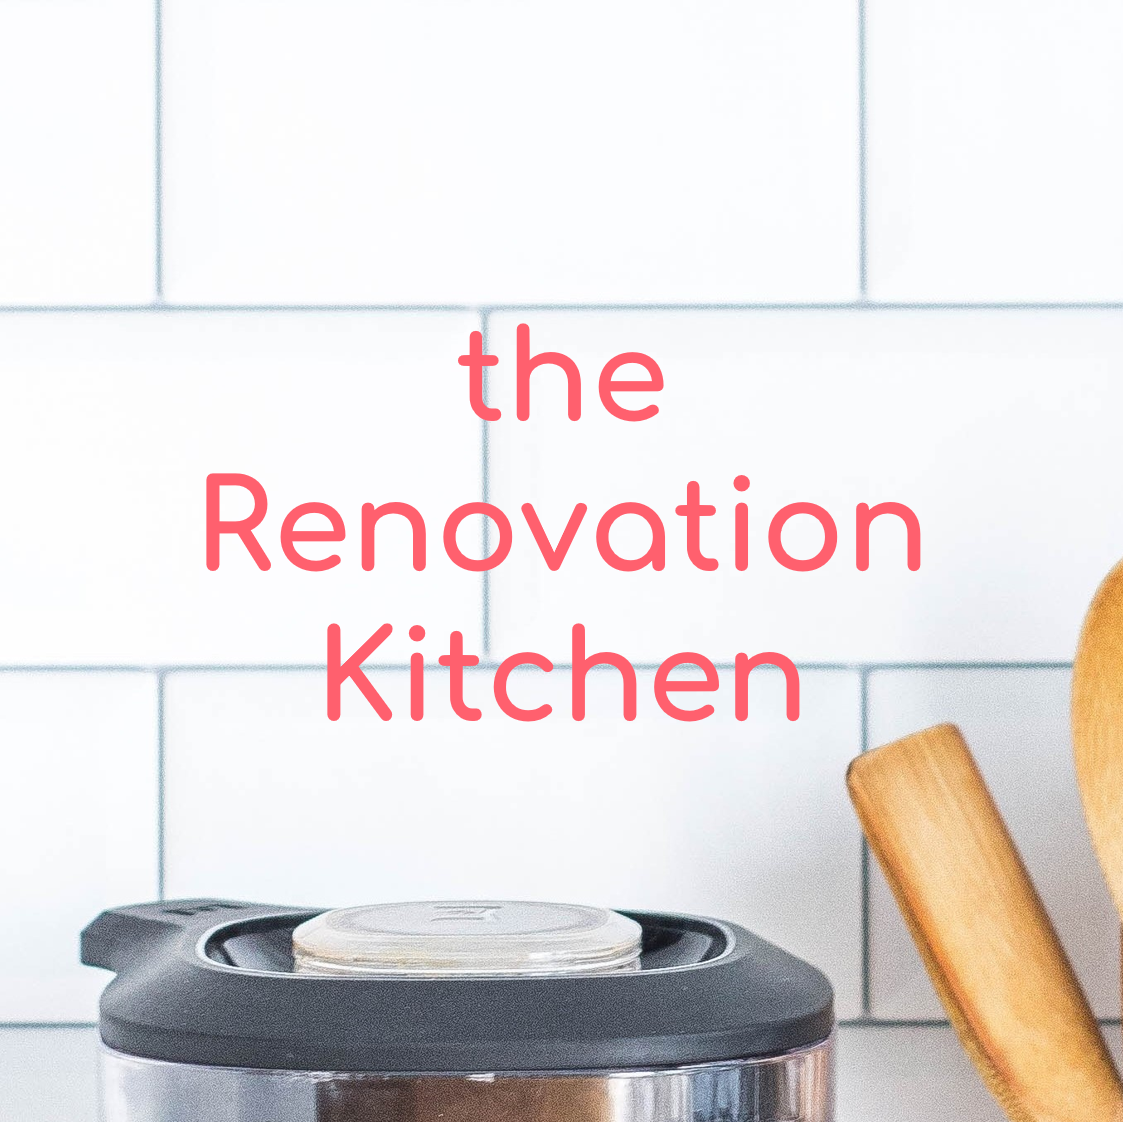 the Renovation Kitchen